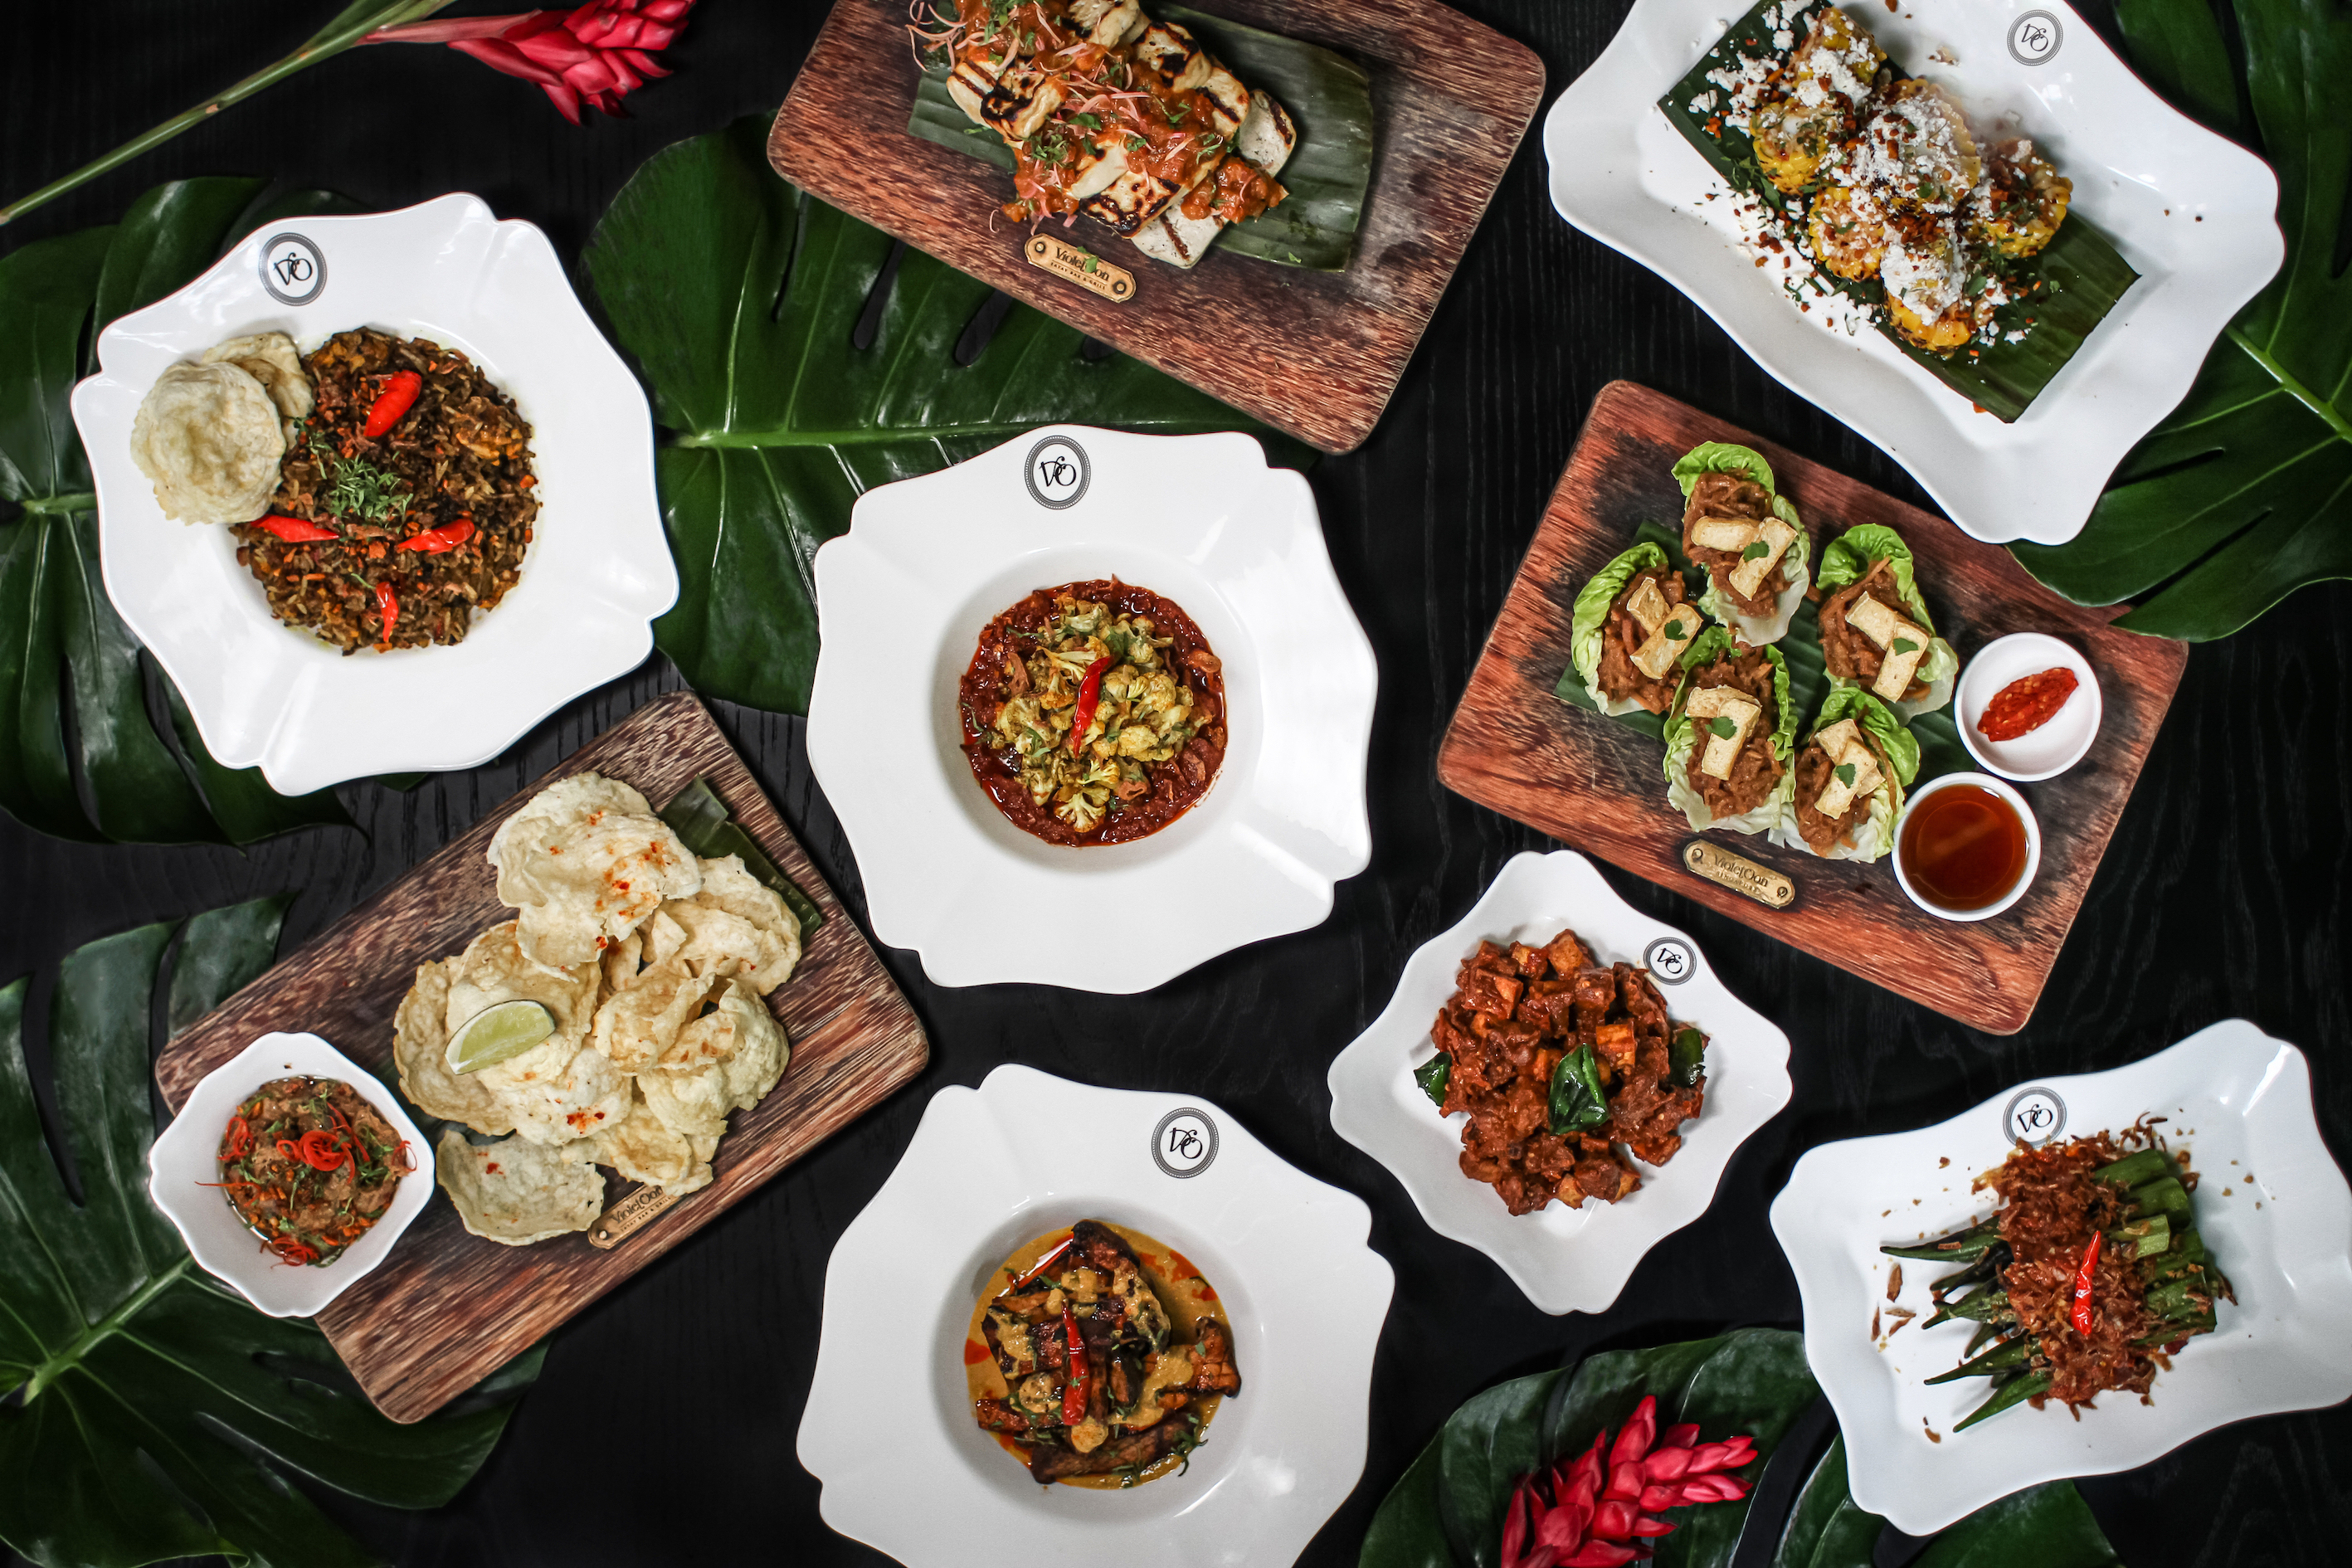 Violet Oon Singapore expands its plant-based menu with meatless satay, mushroom pongteh and more